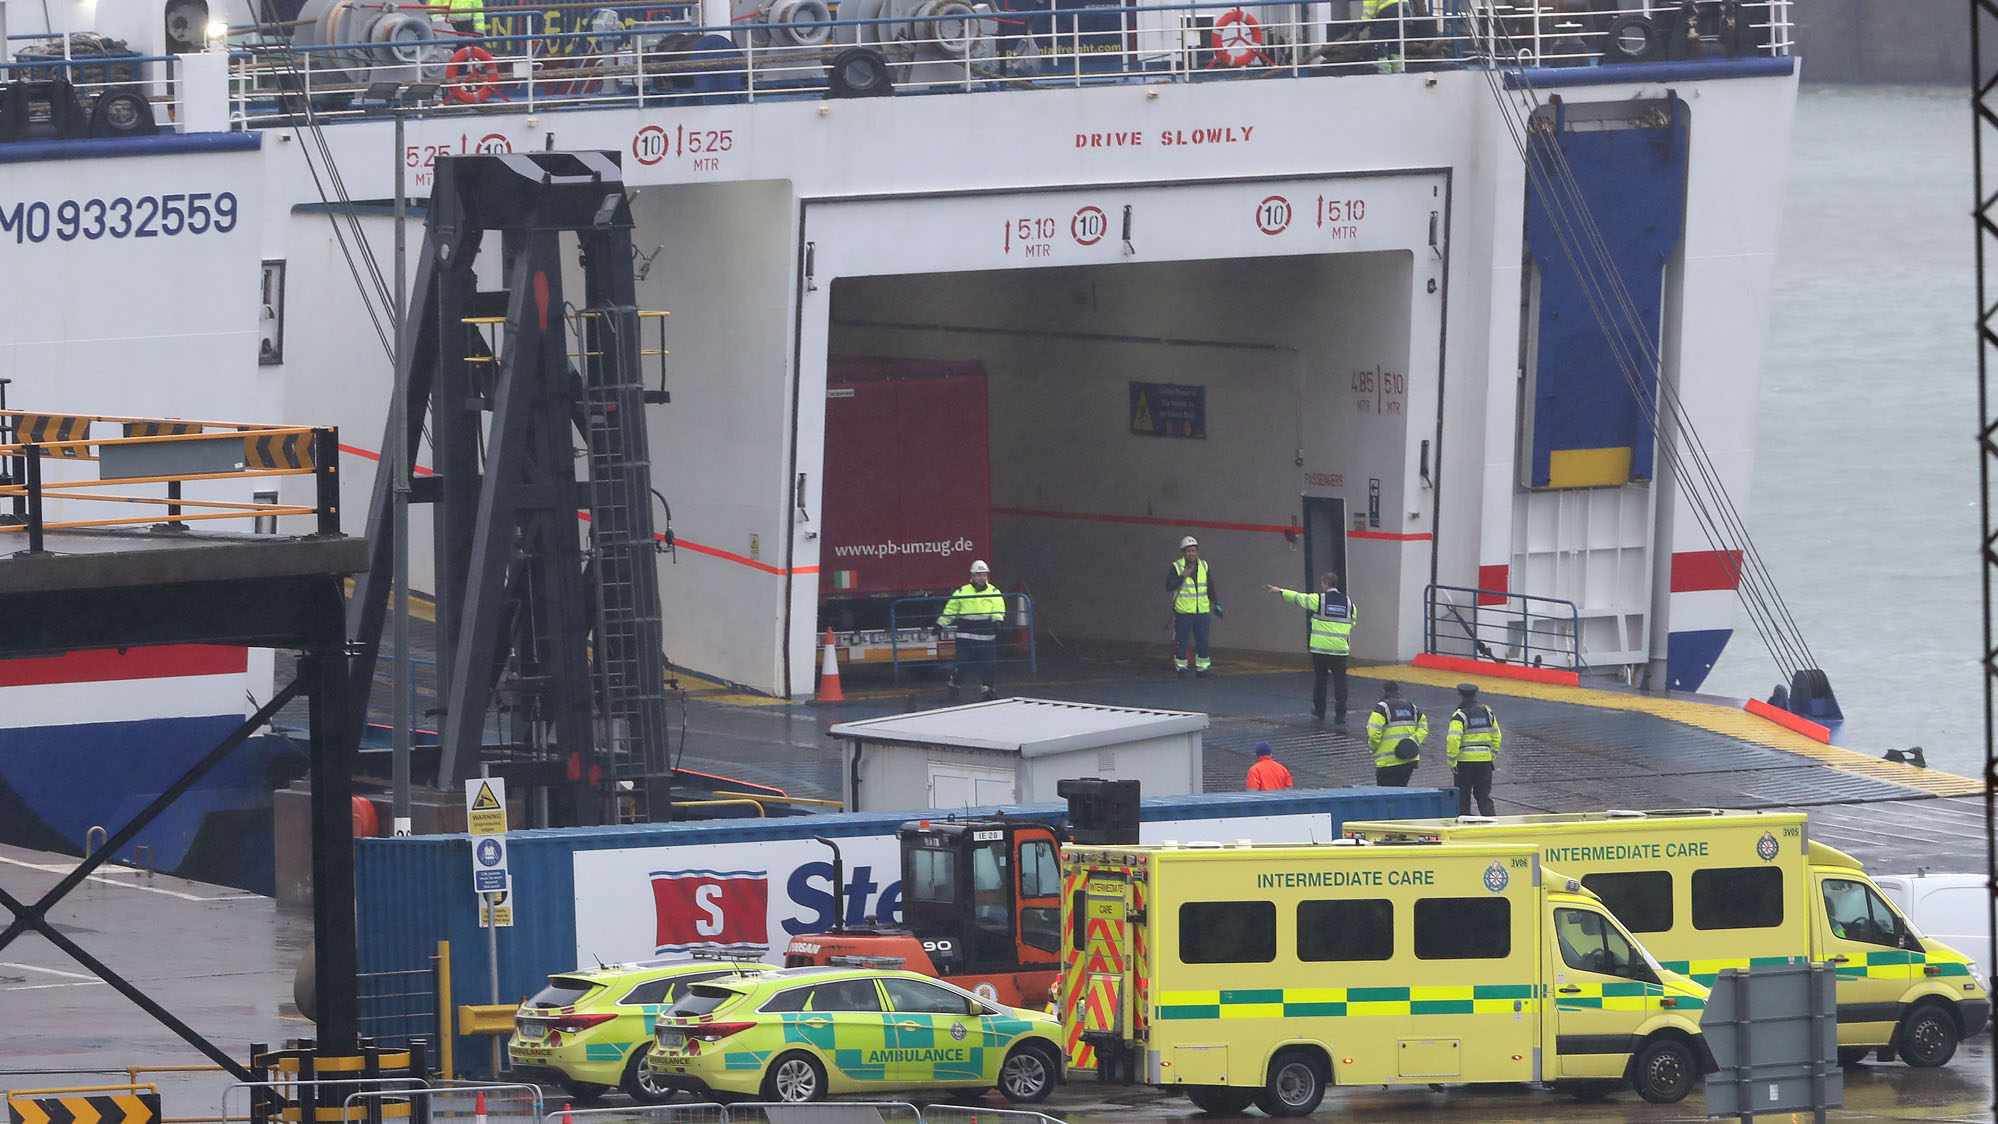 16 people found in truck's trailer on ferry bound for Ireland